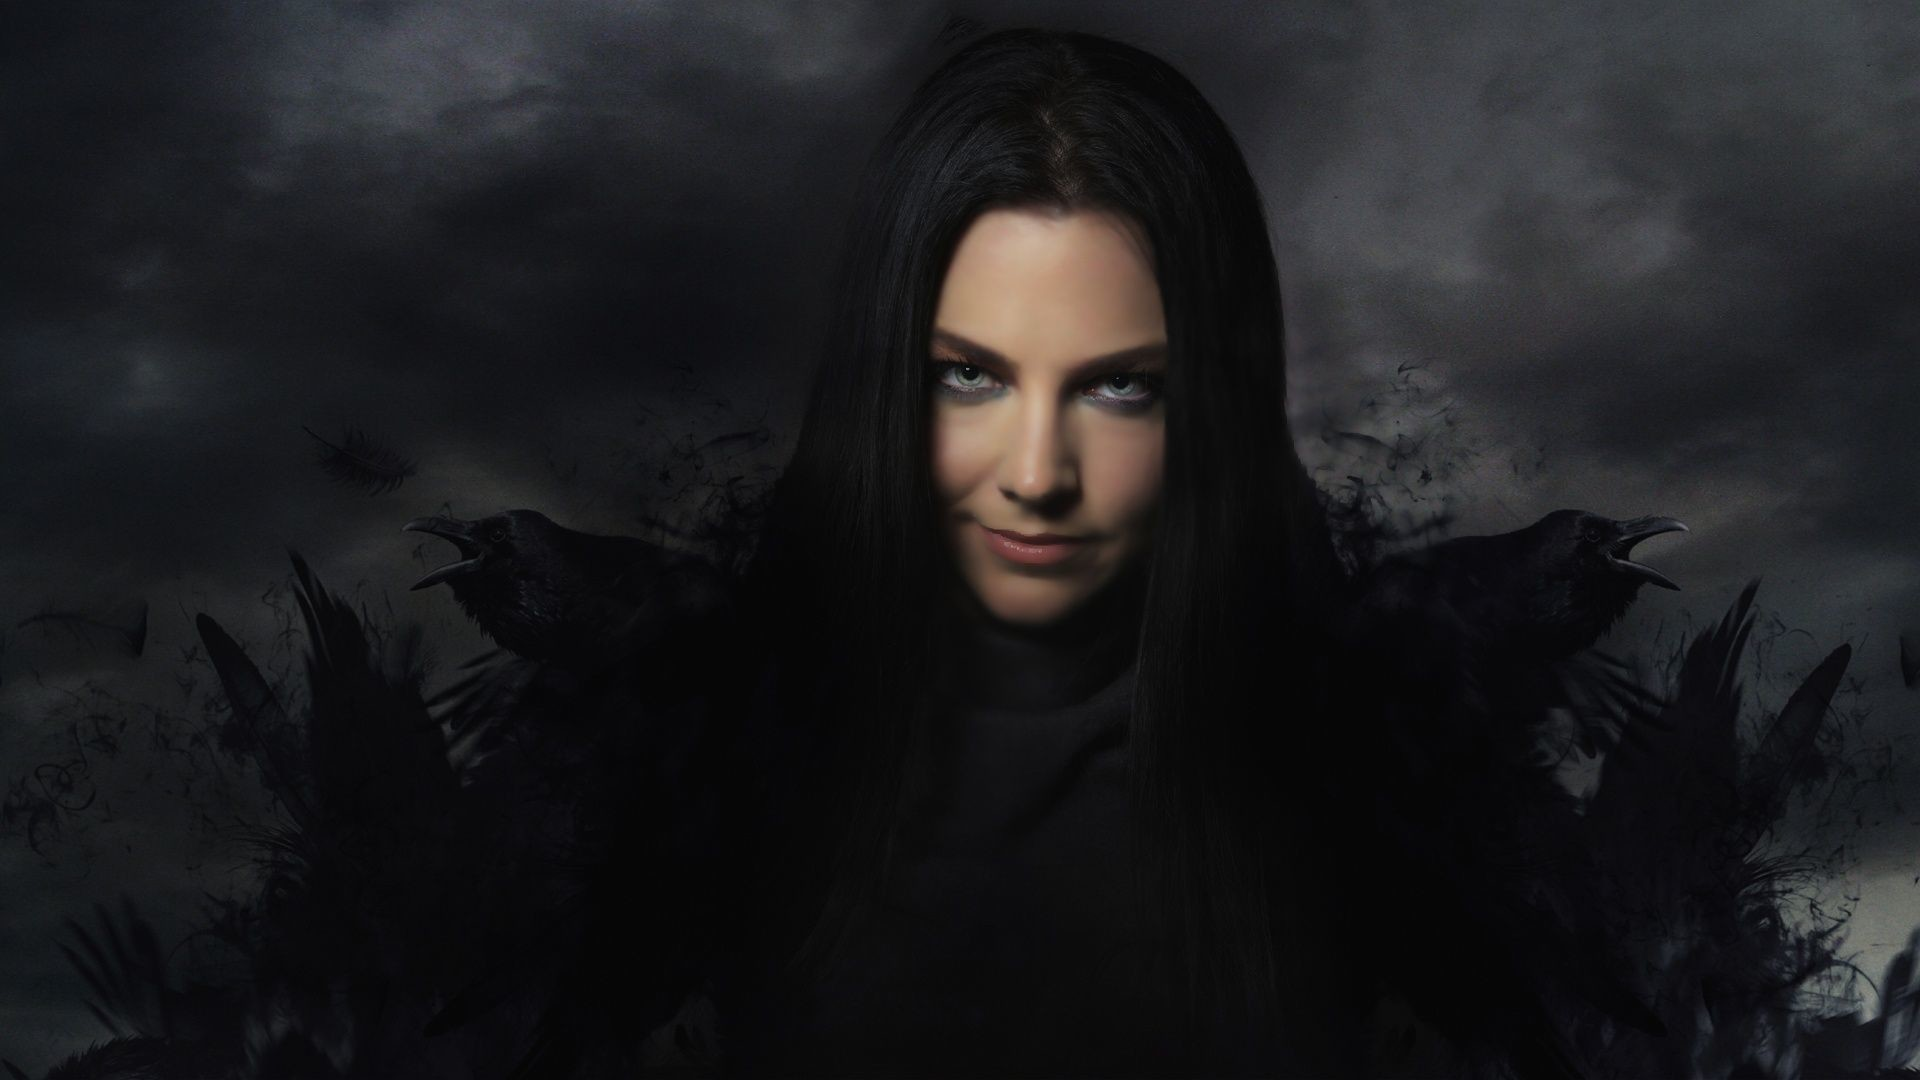 Amy Lee HD Wallpaper 61 images 1920x1080